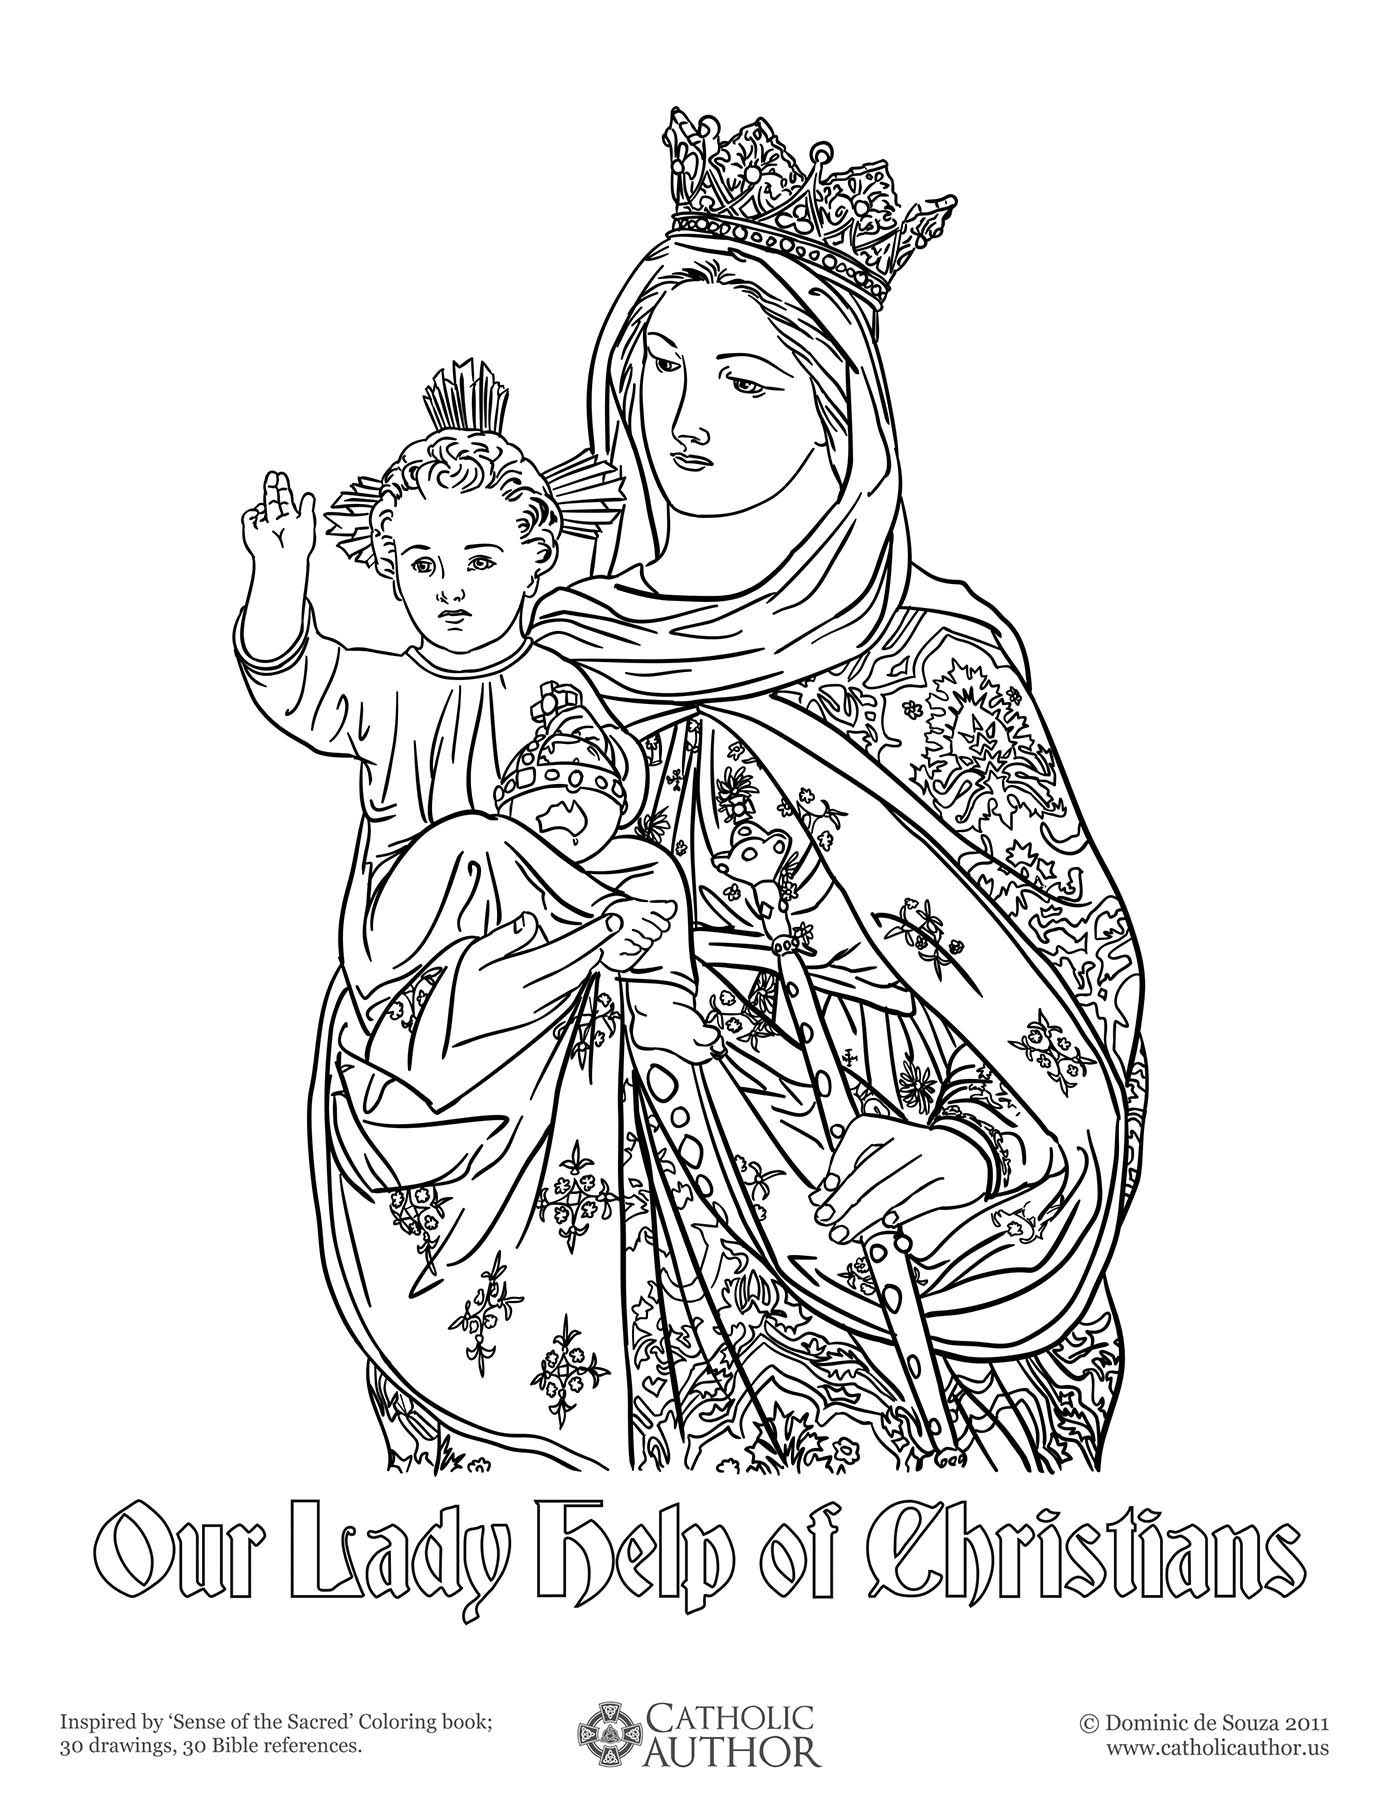 our lady help of christians free hand drawn catholic coloring